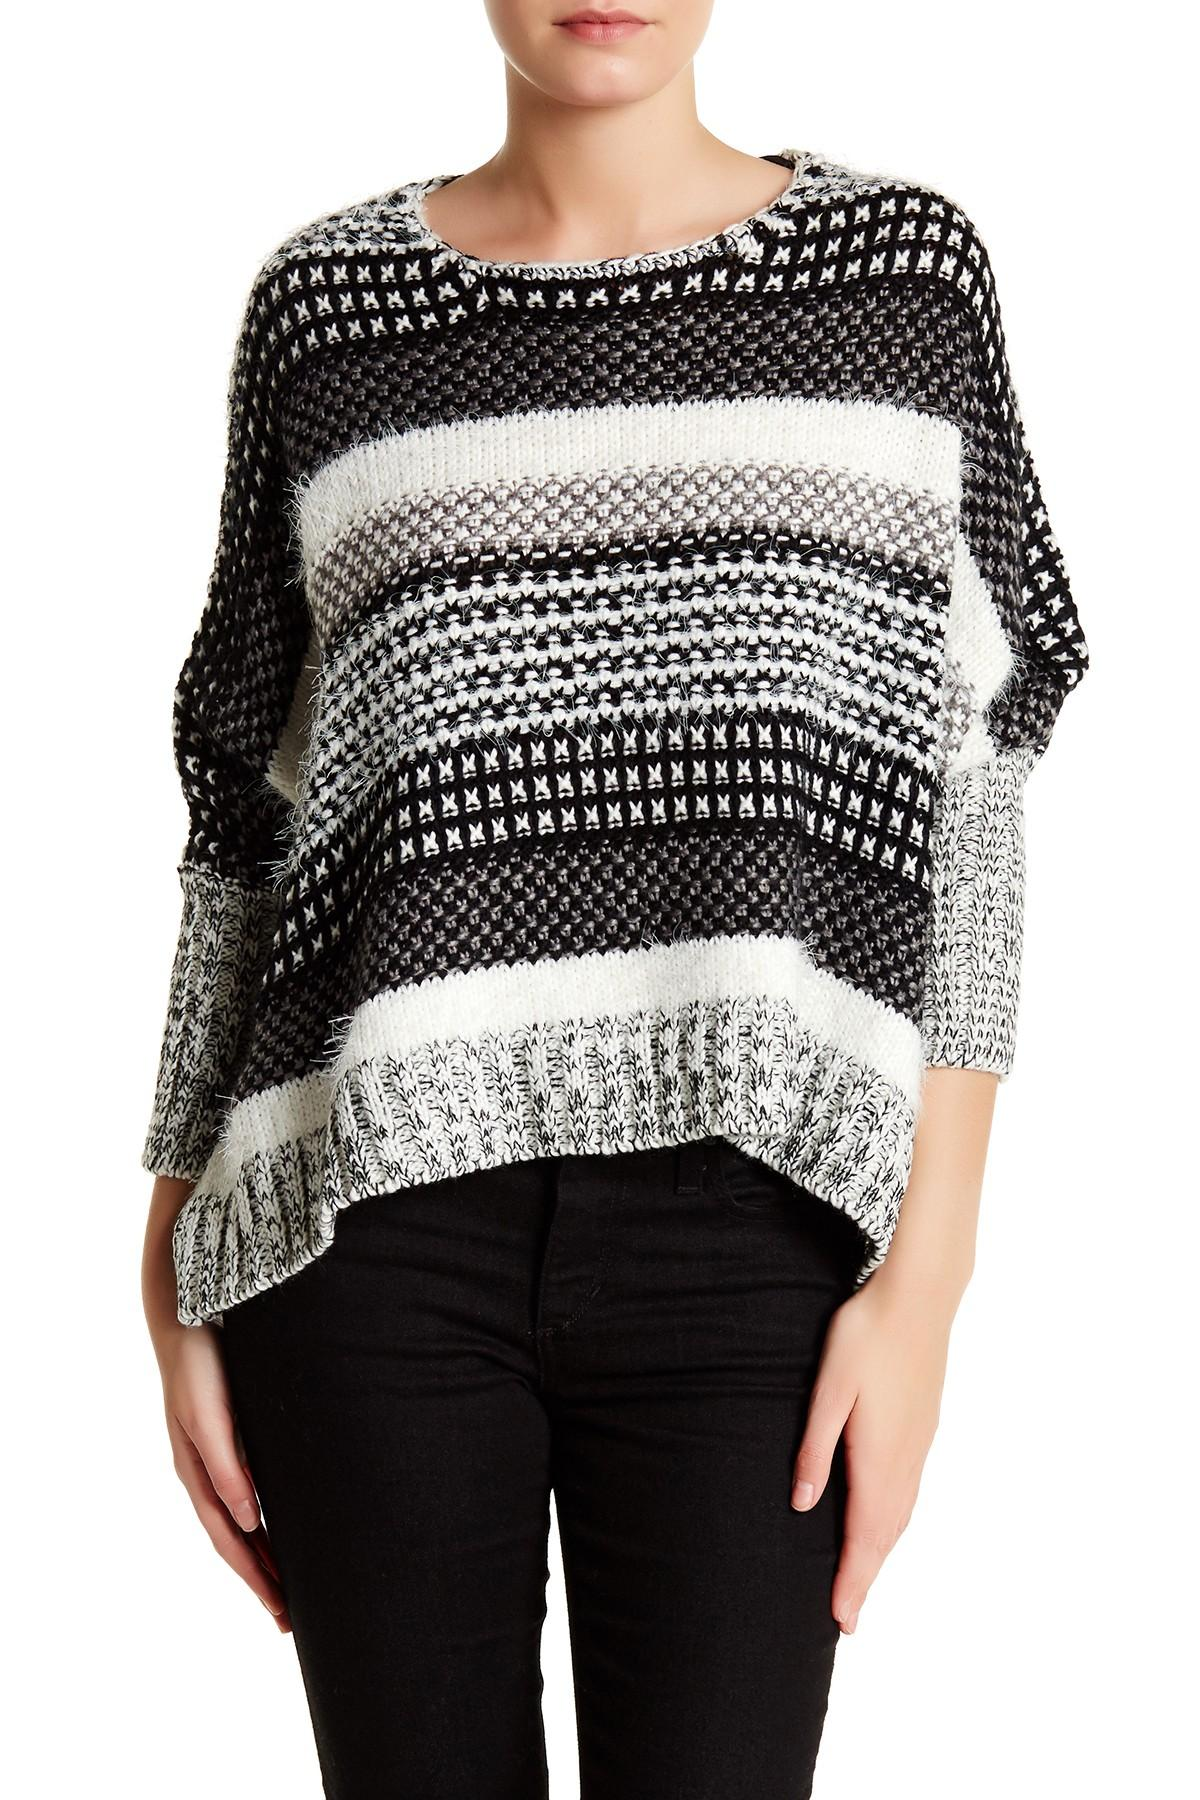 Stitch Knitted Sweater Together : Love stitch Mixed Knit Cropped Sweater Lyst